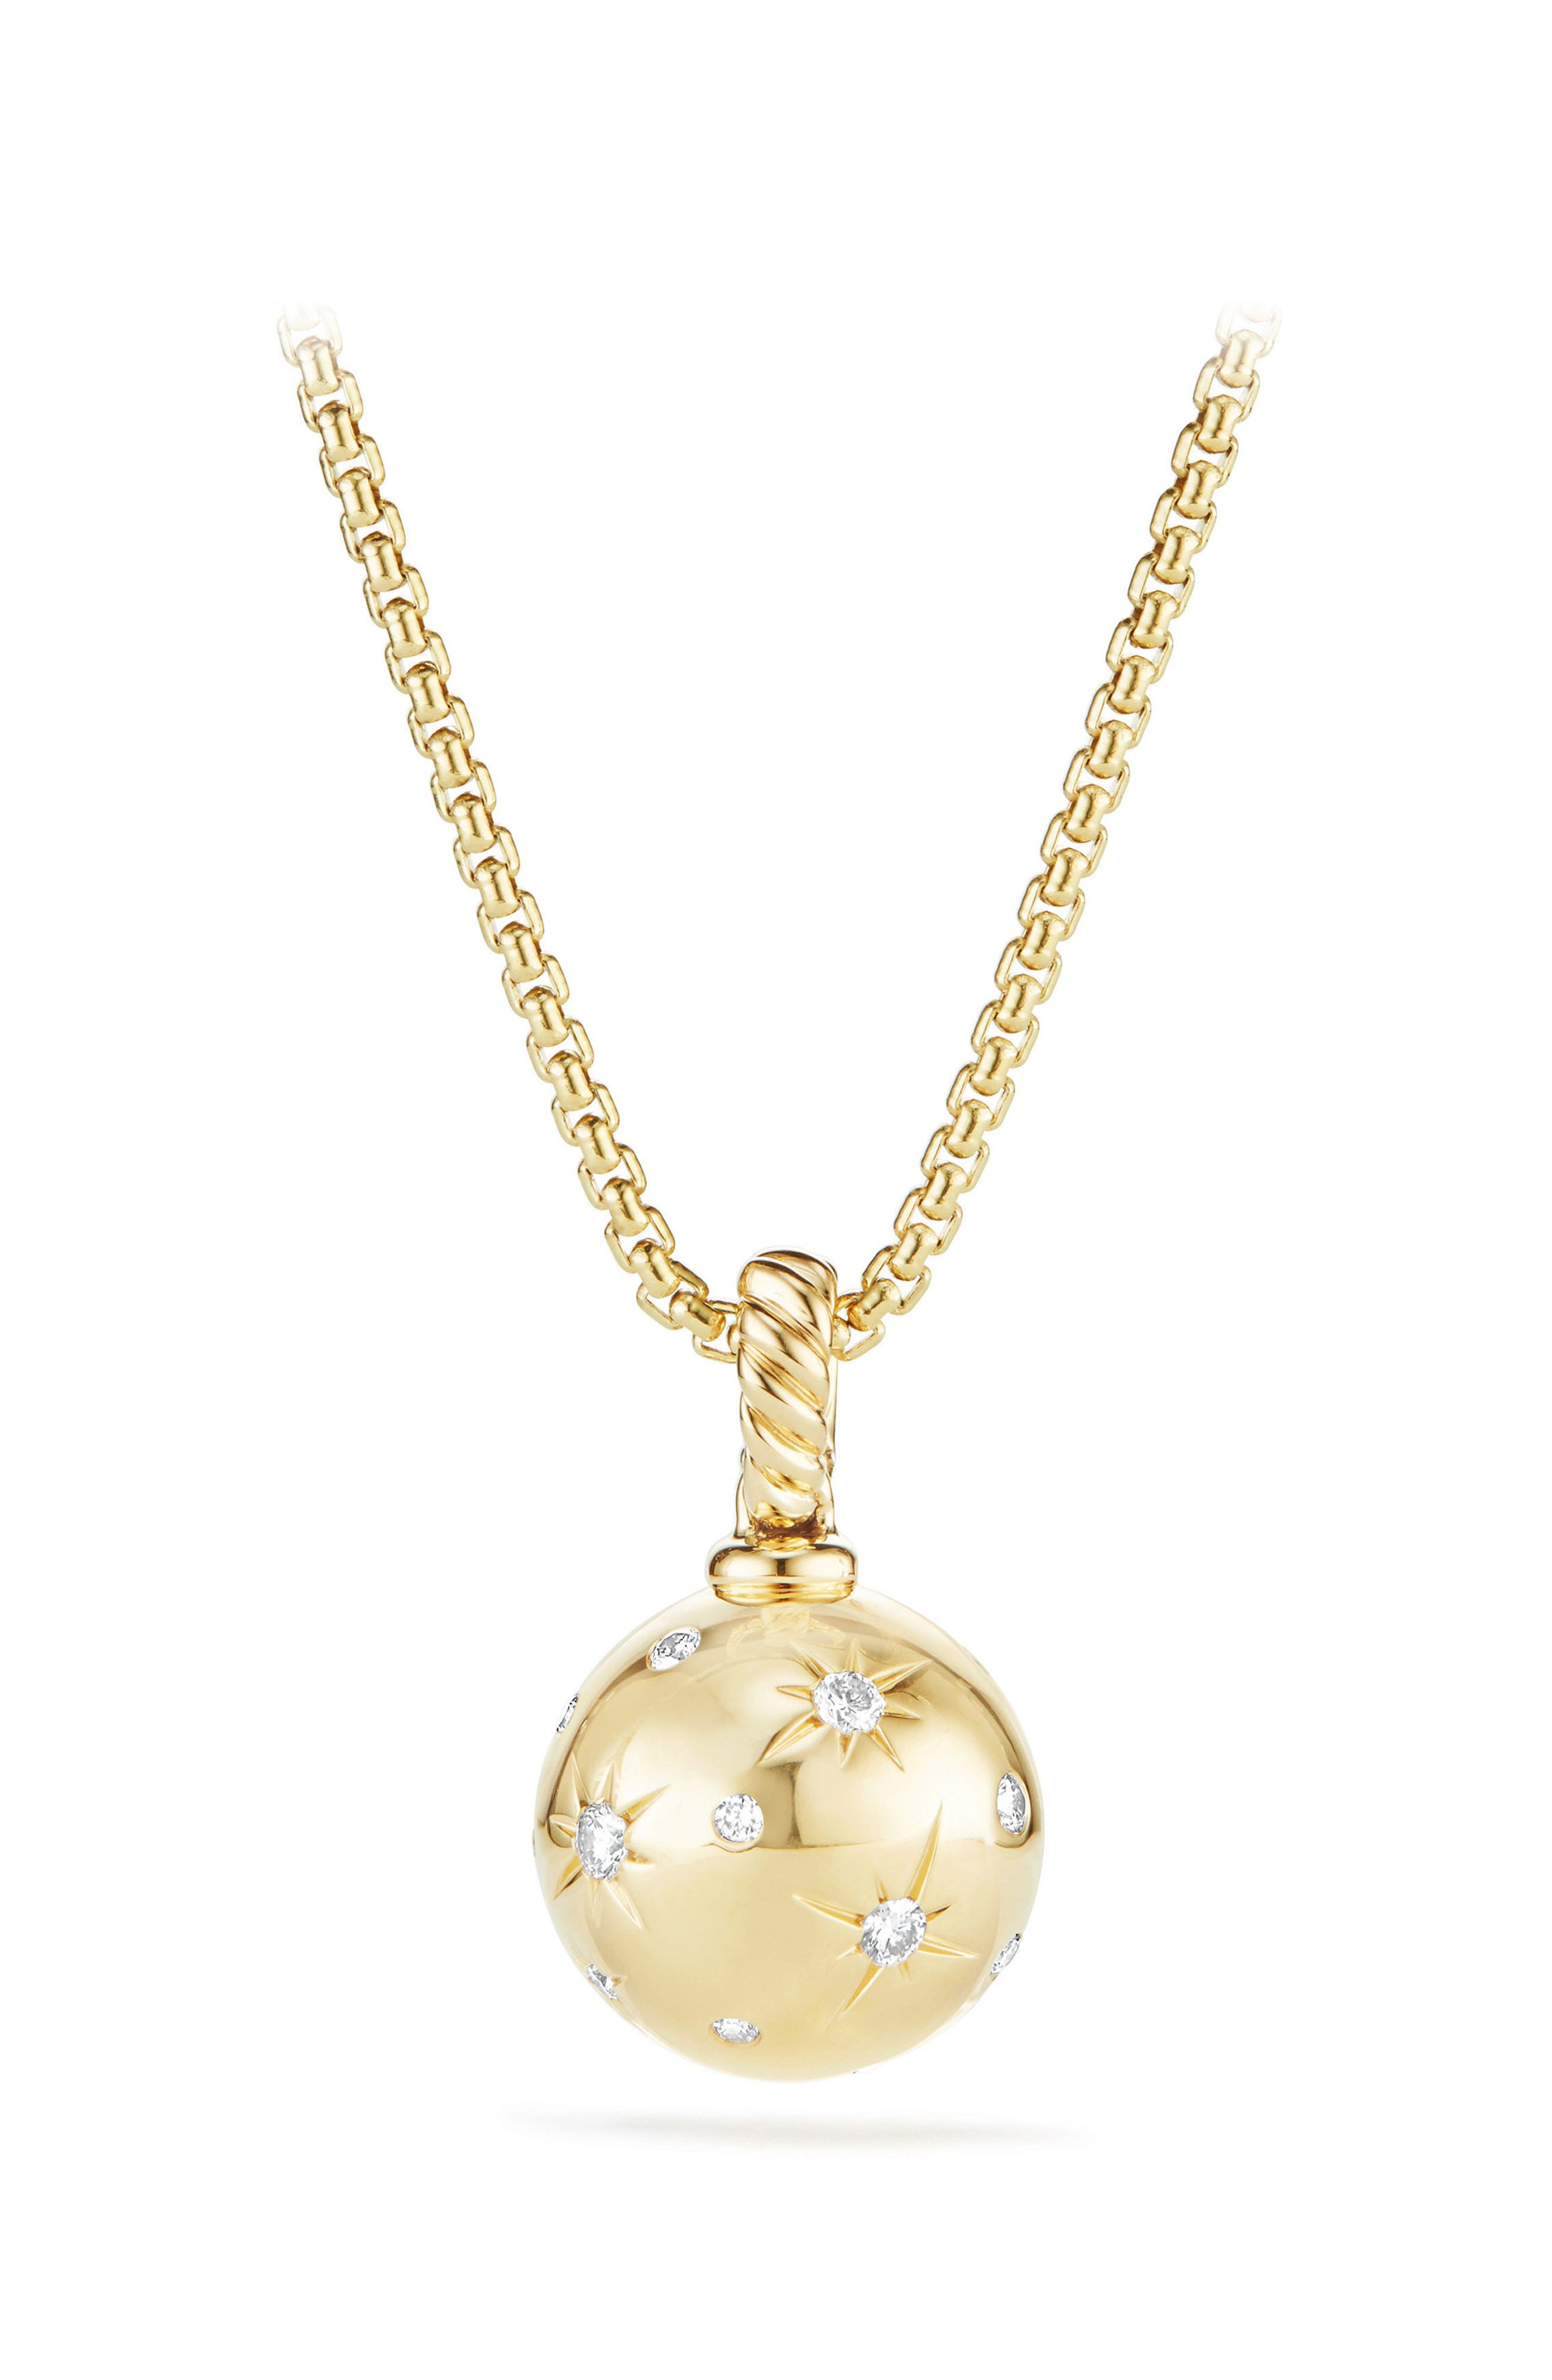 David Yurman Solari Pendant Necklace in 18K Gold